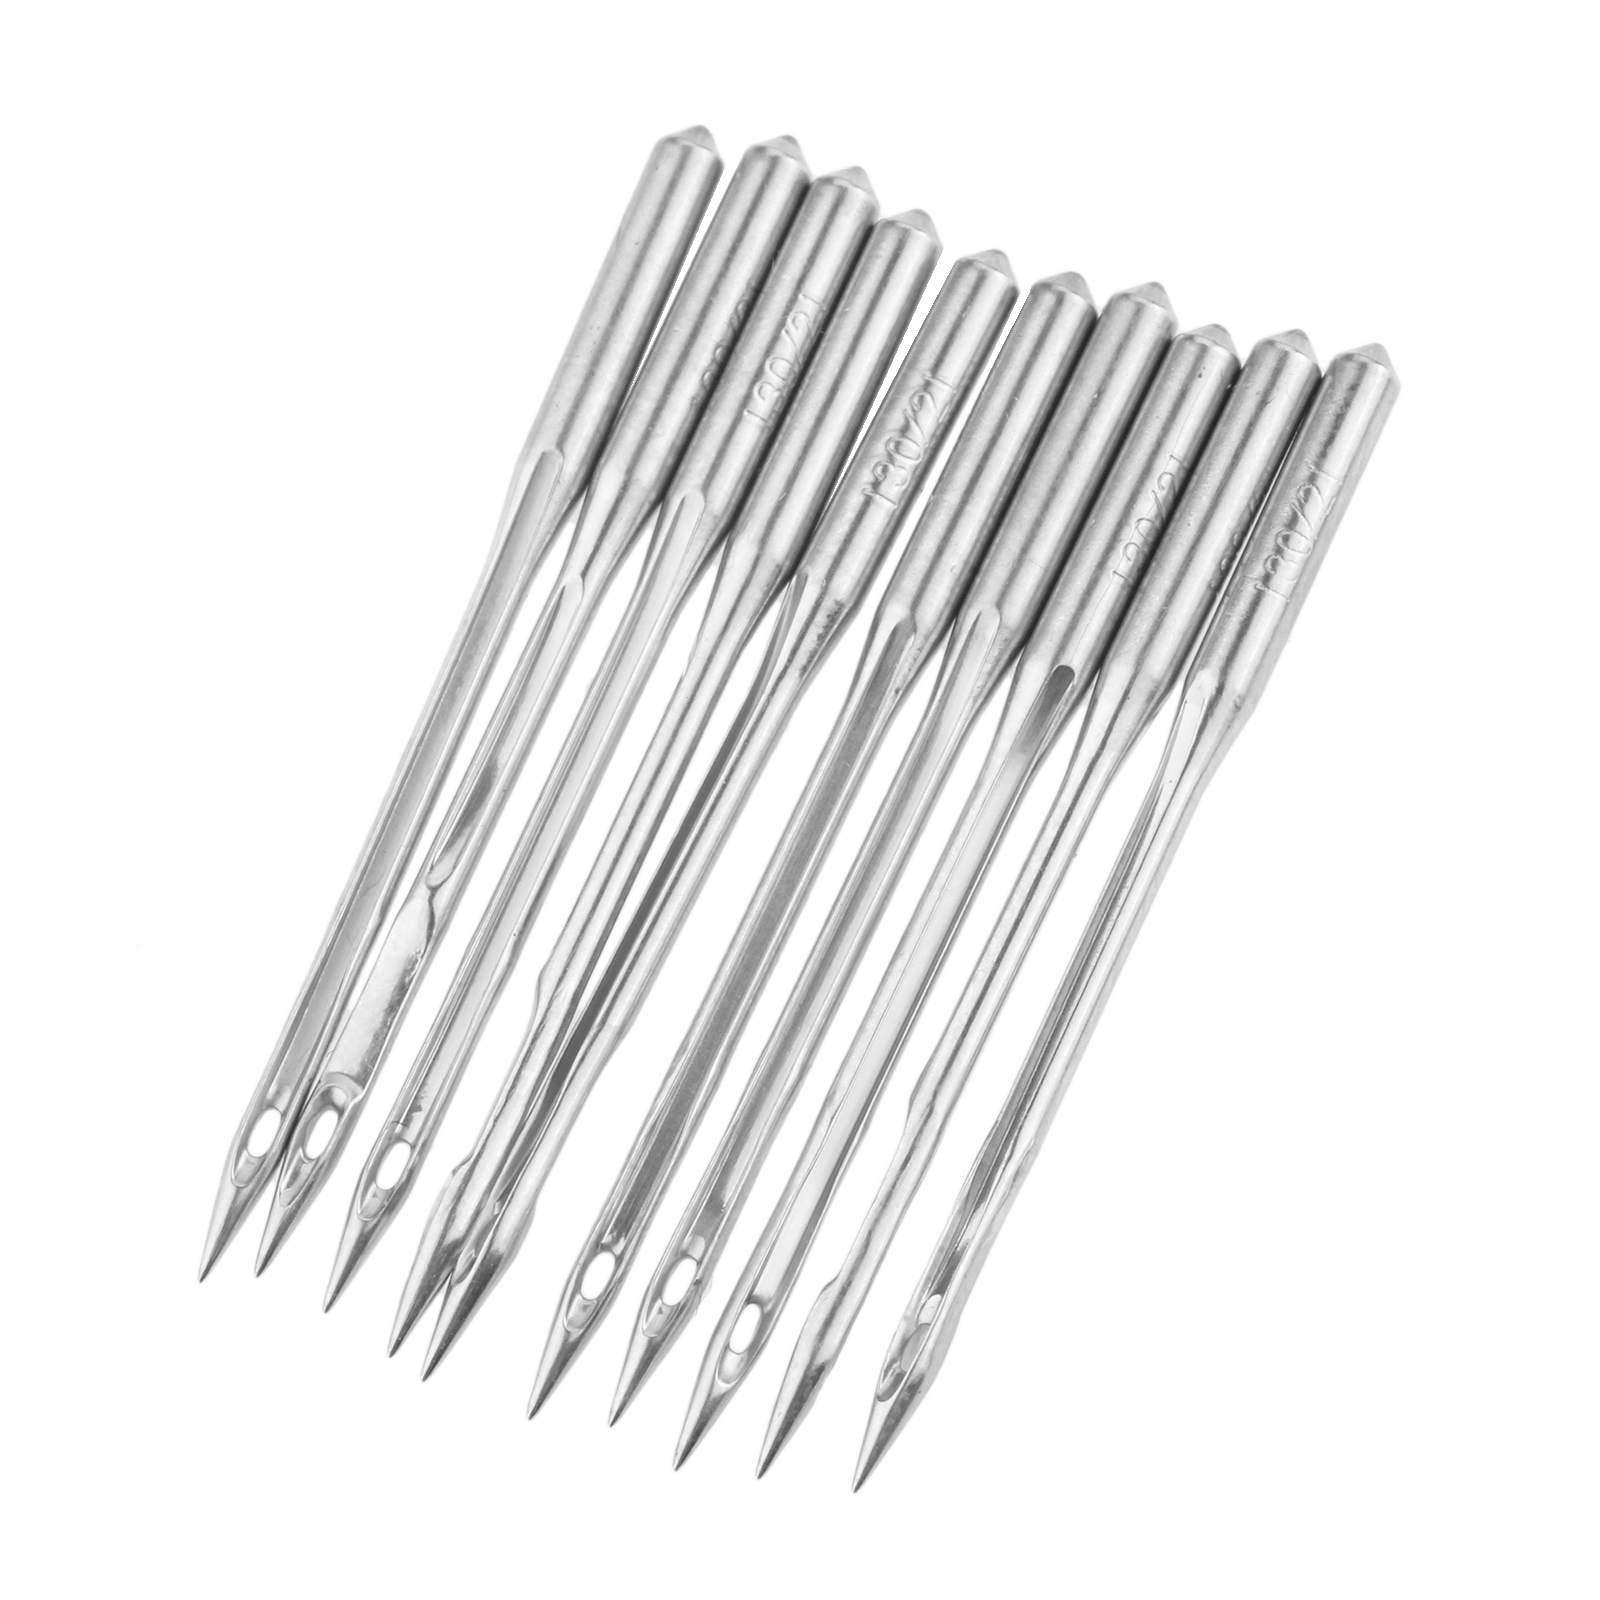 10Pcs DC*1 Industrial Domestic Overlock Sewing Machine Needles Fit for JUKI BROTHER Singer Sewing Needles Parts Accessory 9#-21#